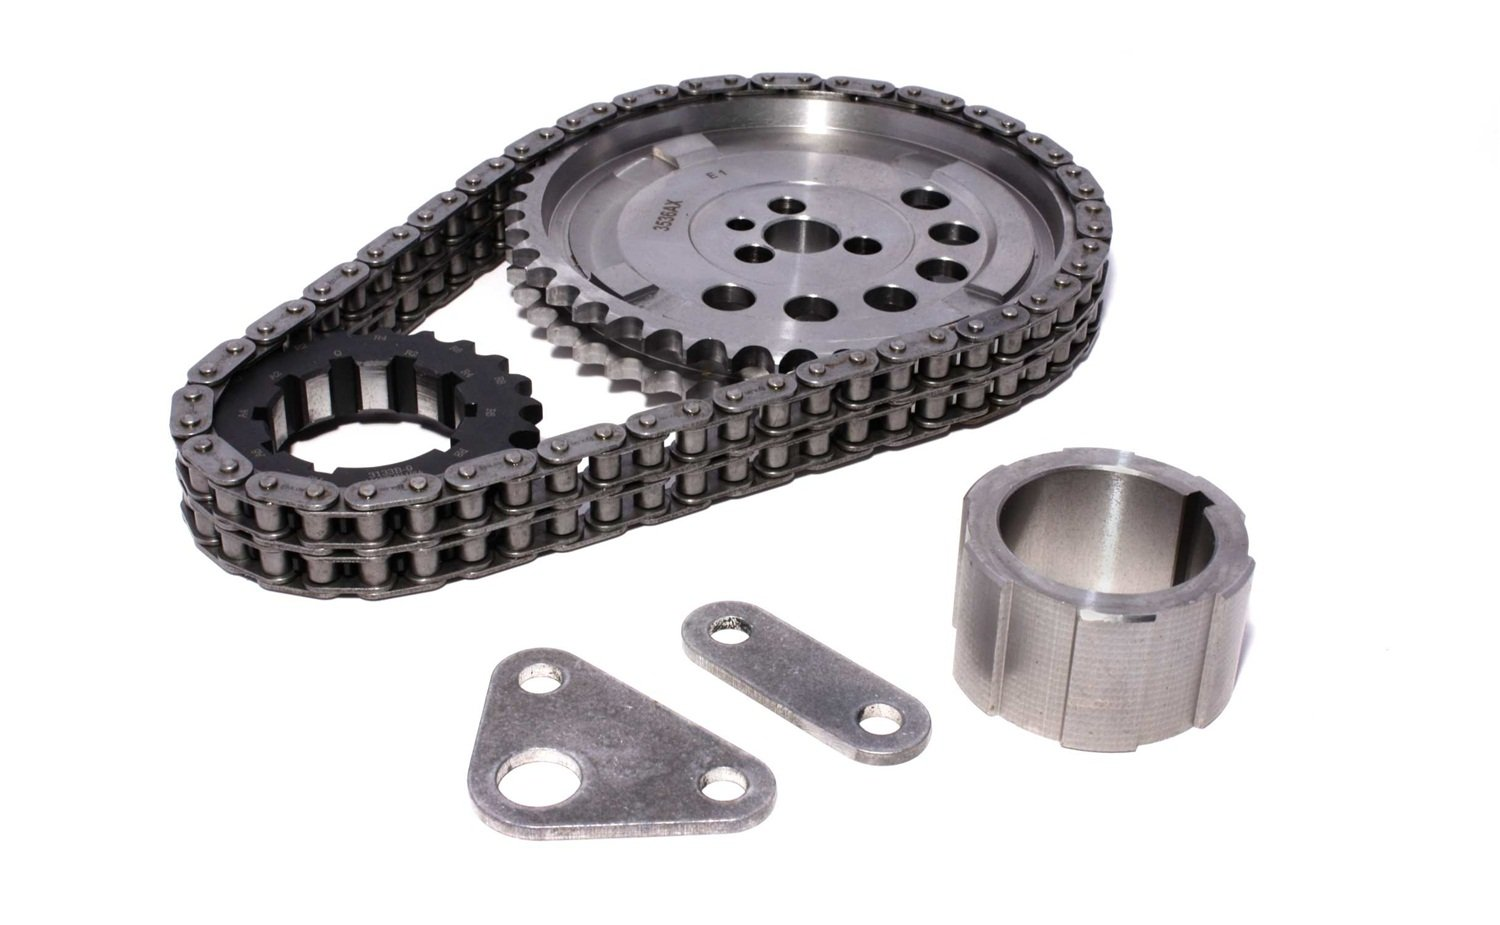 Competition Cams 7106 Keyway Adjustable Billet Timing Set for GM LS Engines by Comp Cams